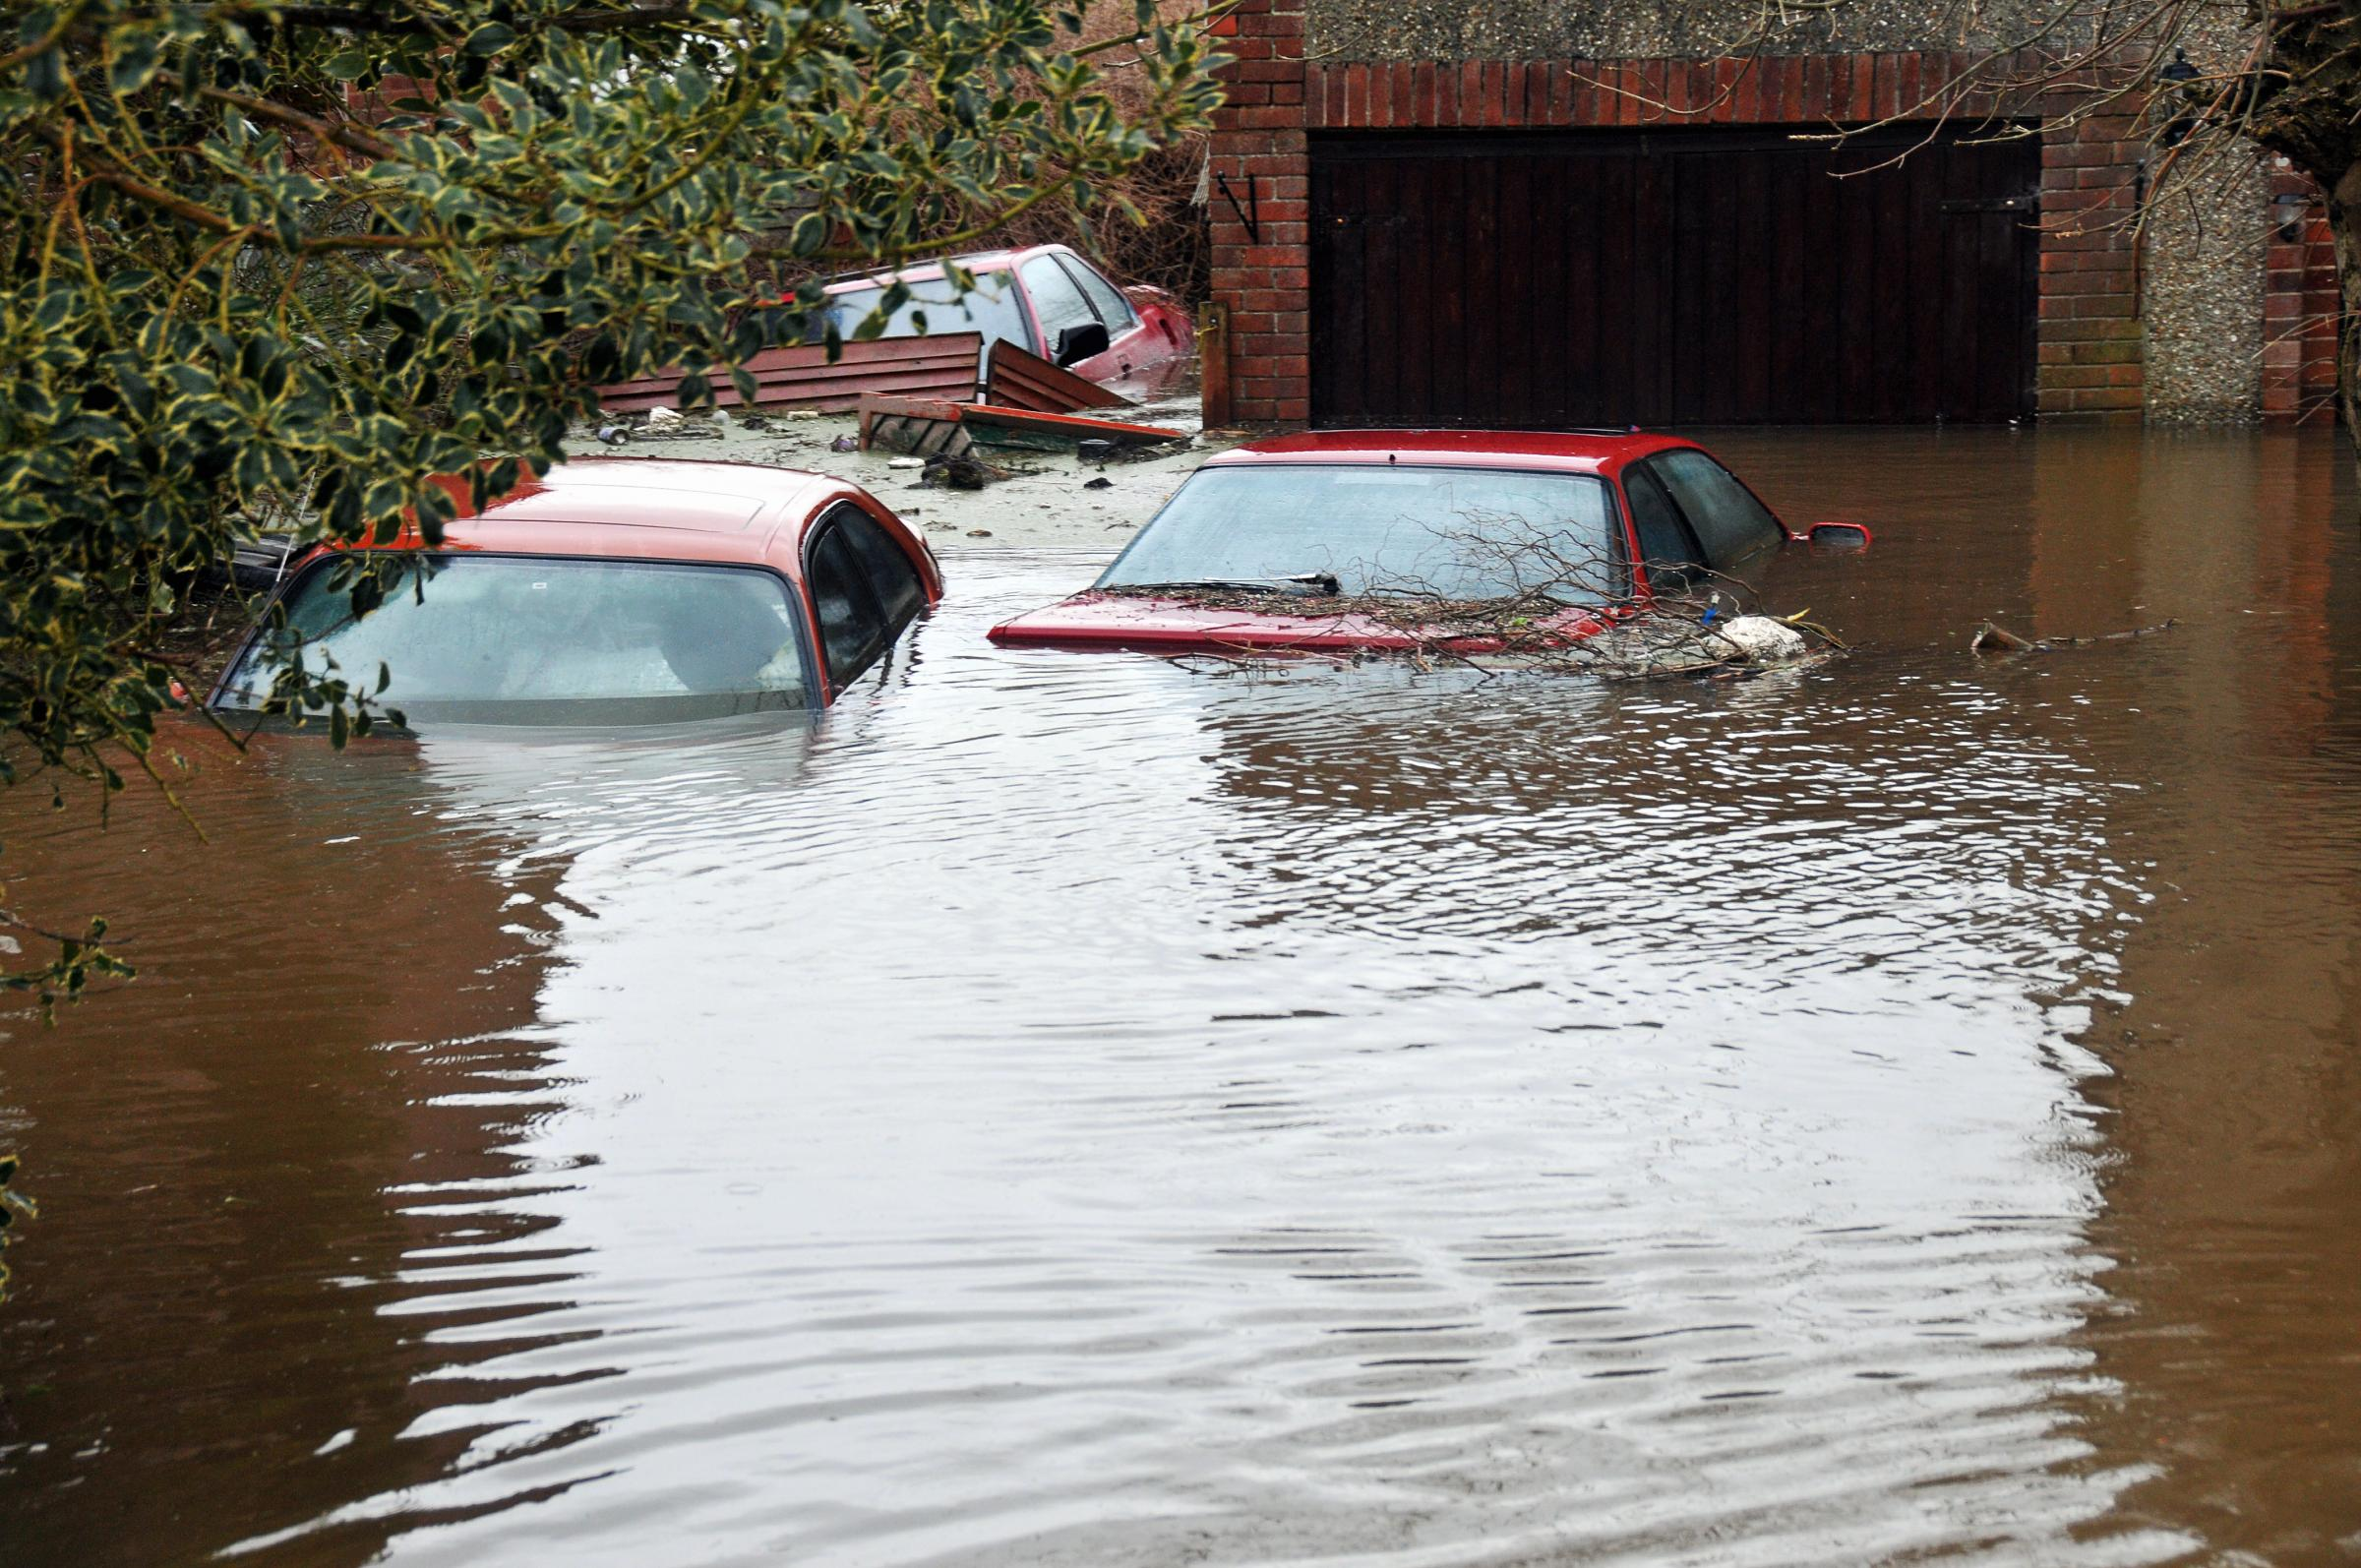 Somerset floods - Muchelney emergency transport service 'st